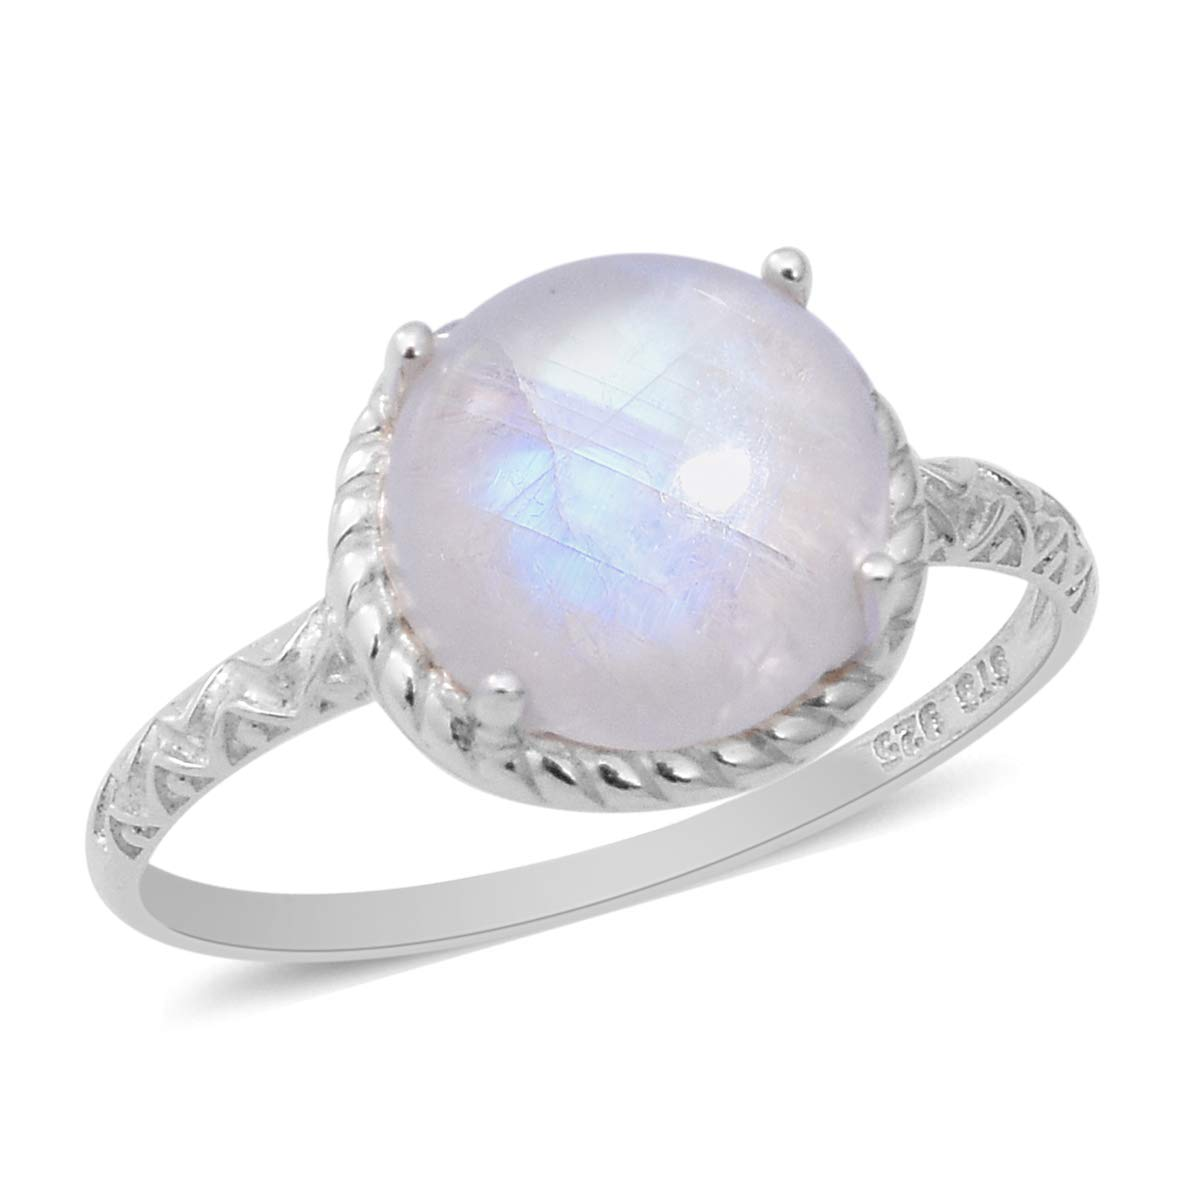 Solitaire Ring 925 Sterling Silver Round Rainbow Moonstone Jewelry for Women Gift Size 5 Ct 3.8